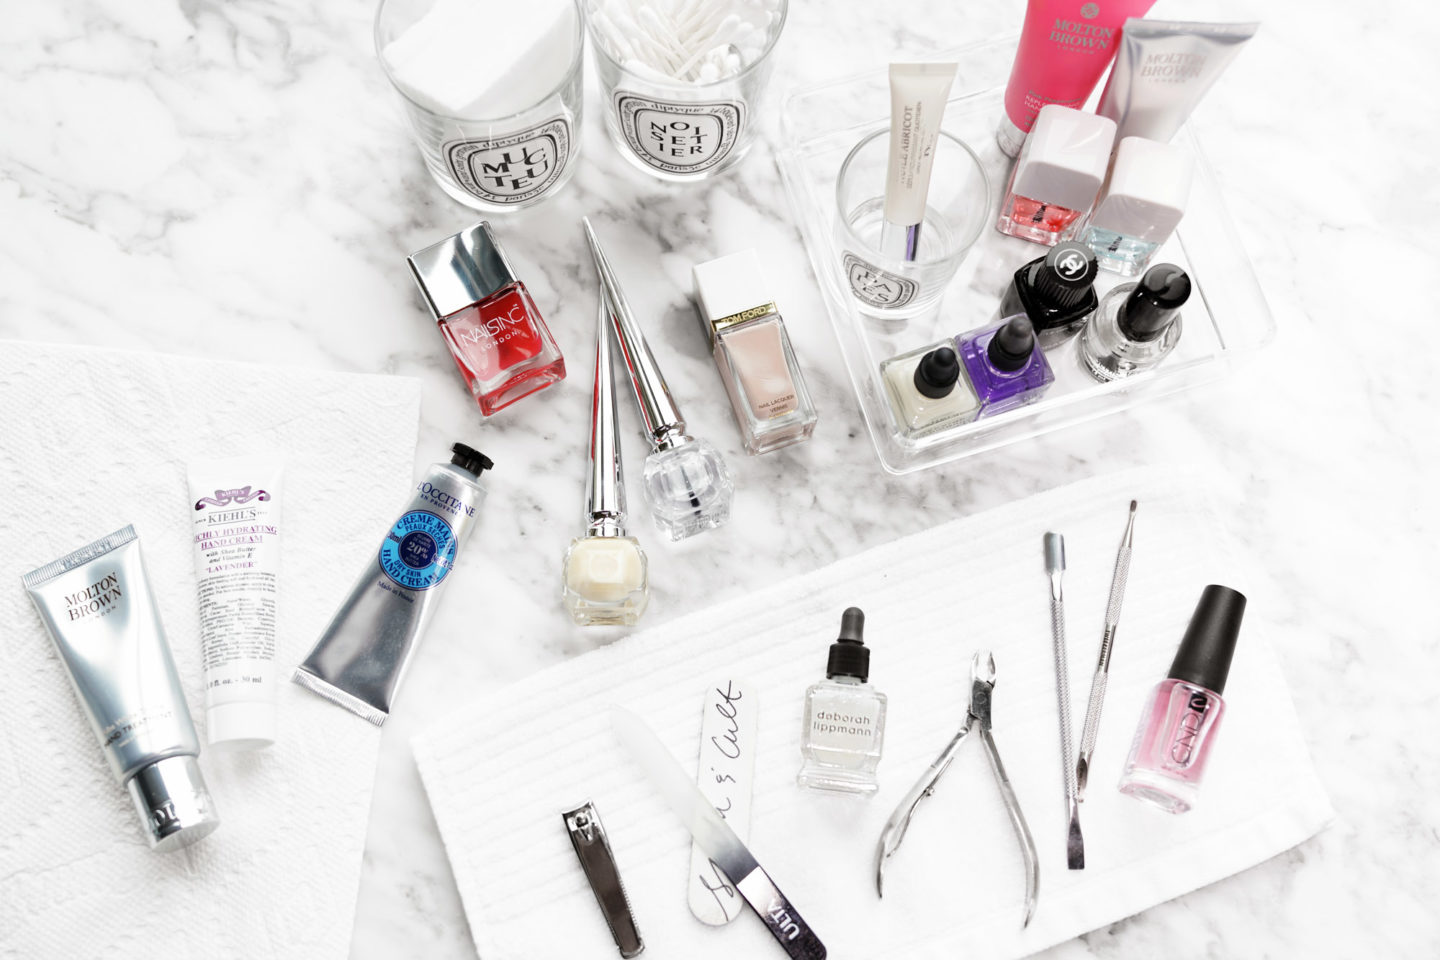 Best Hand and Nail Care Essentials for a DIY Manicure